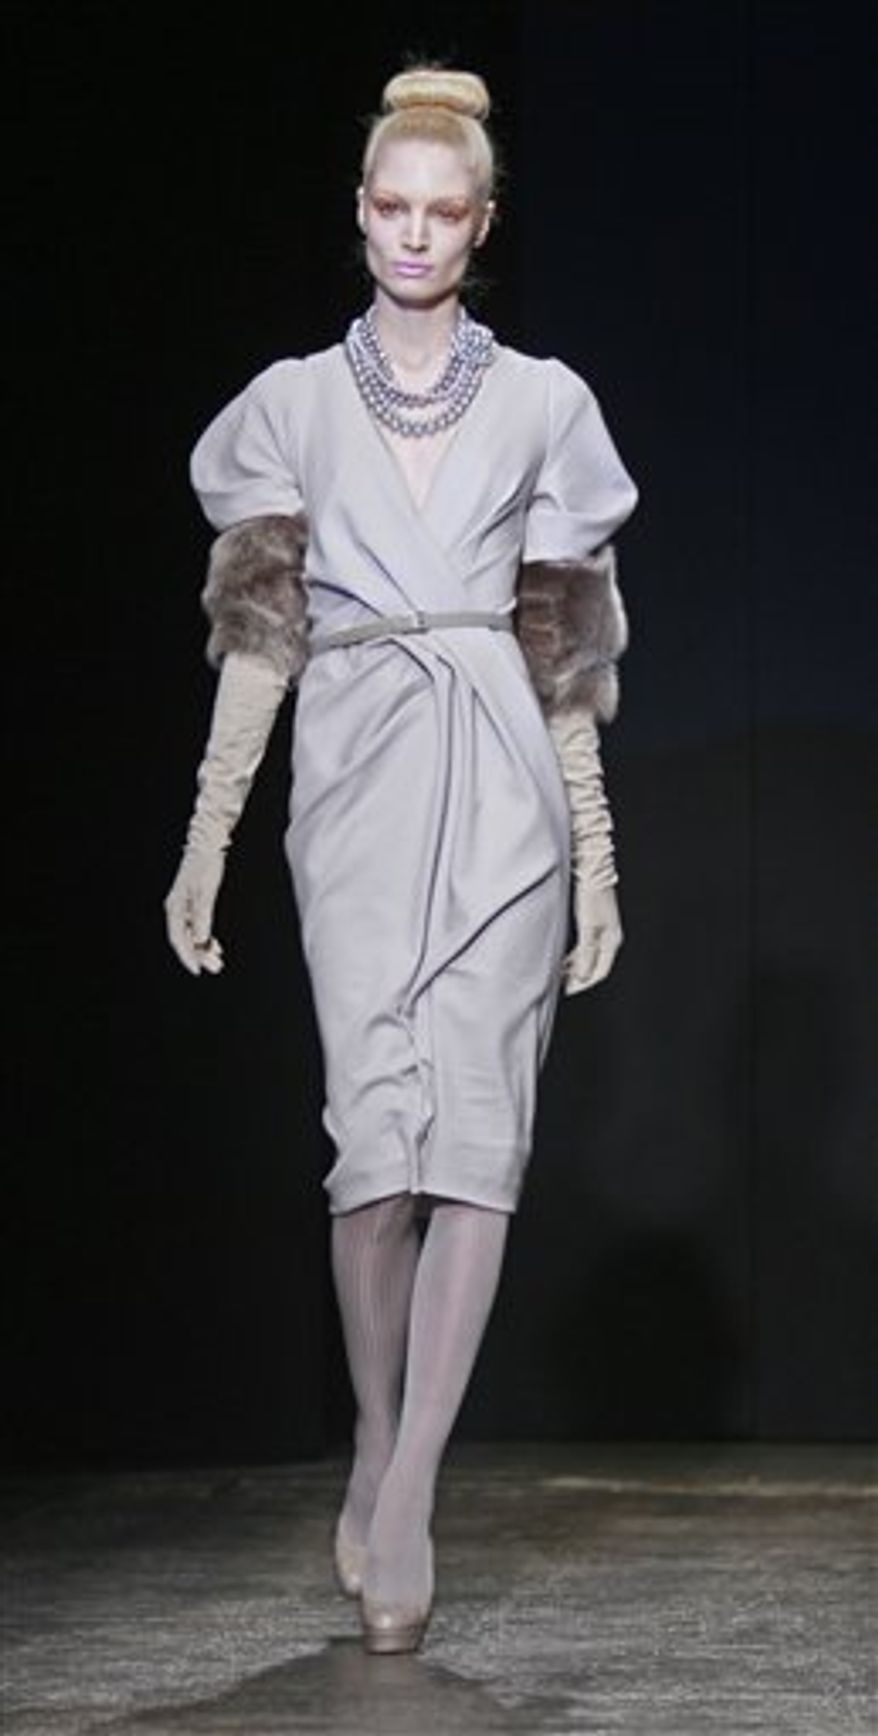 Fashion from the fall 2011 collection of Donna Karan is modeled on Monday, Feb. 14, 2011 in New York.  (AP Photo/Bebeto Matthews)